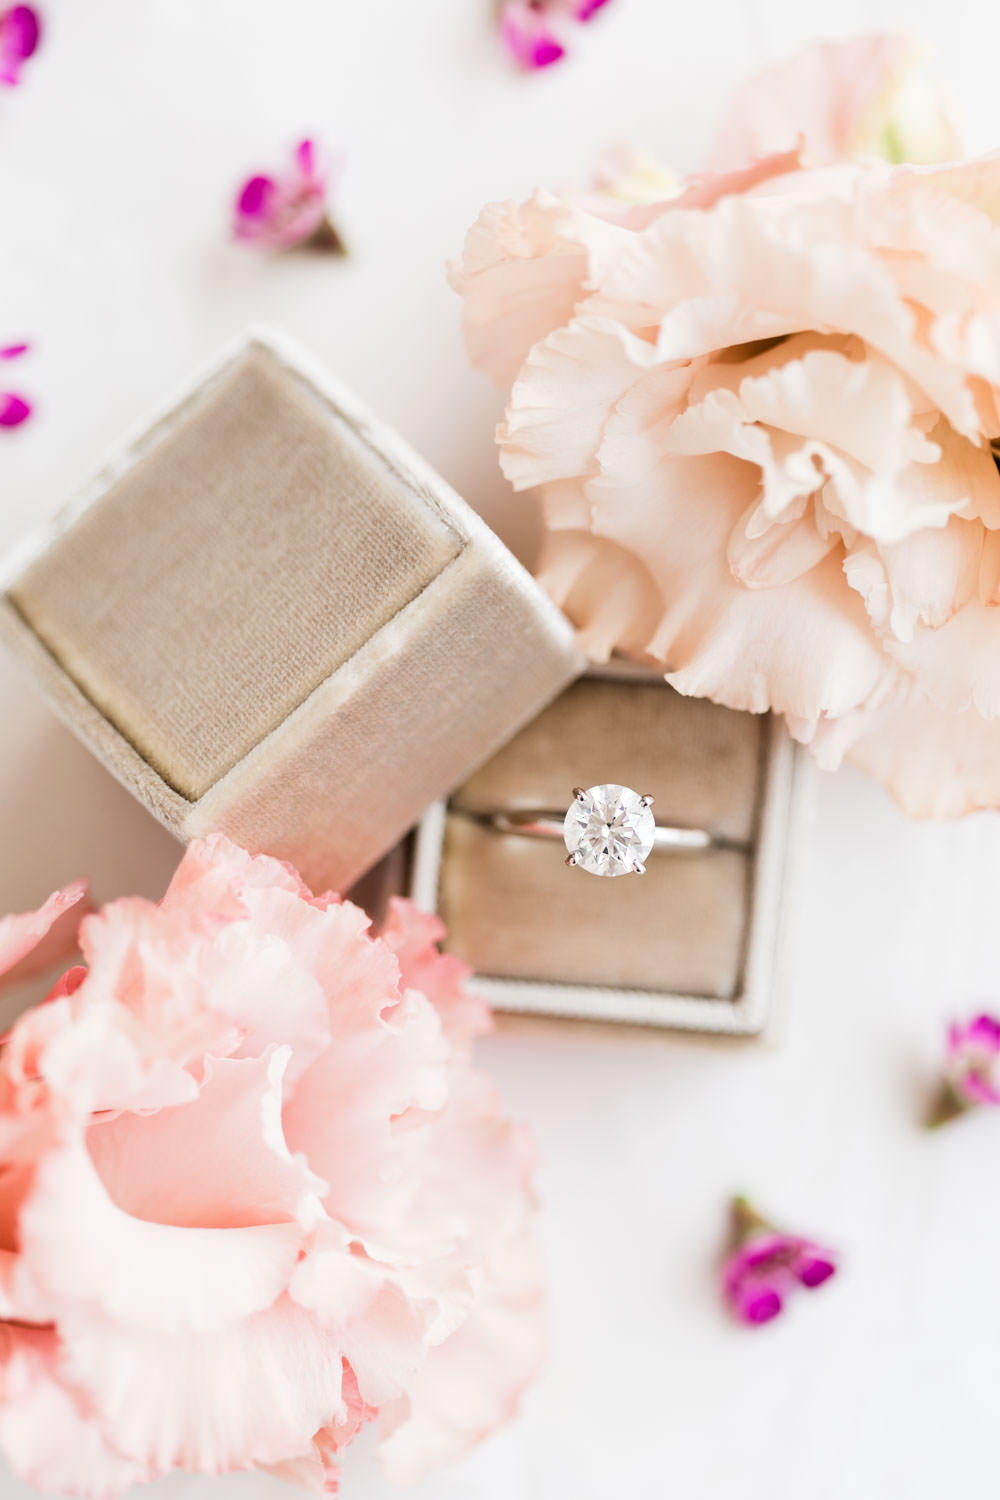 Diamond solitaire engagement ring in gold taupe Mrs box, La Quinta Resort Wedding in Palm Springs, Cavin Elizabeth Photography